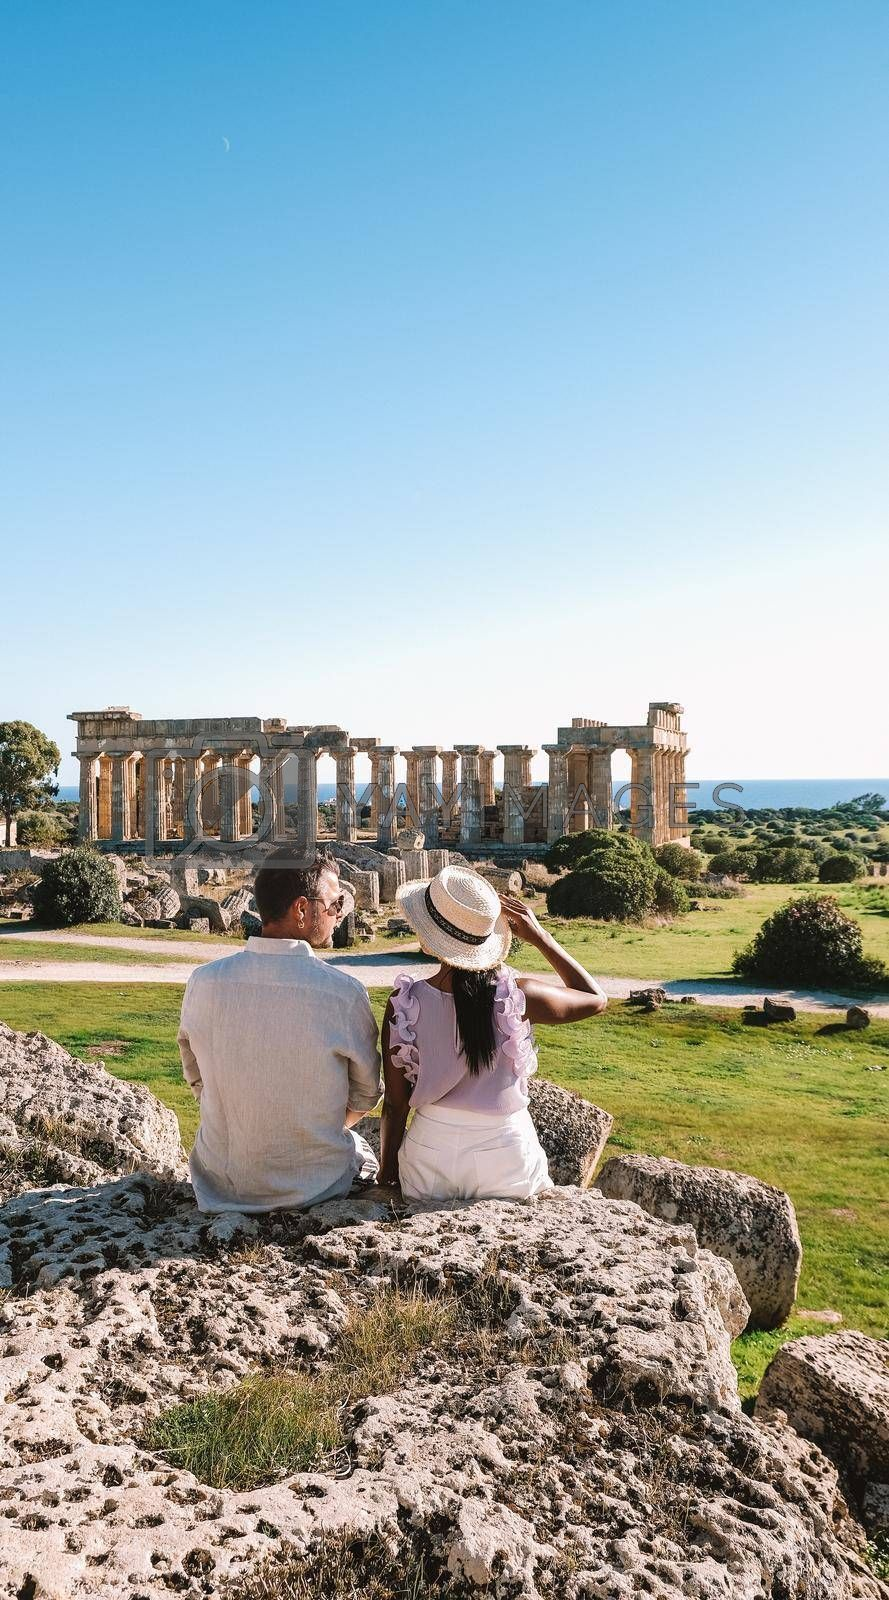 couple watch the old Greek temple in Selinunte Sicily Italy. Selinunte archeological site